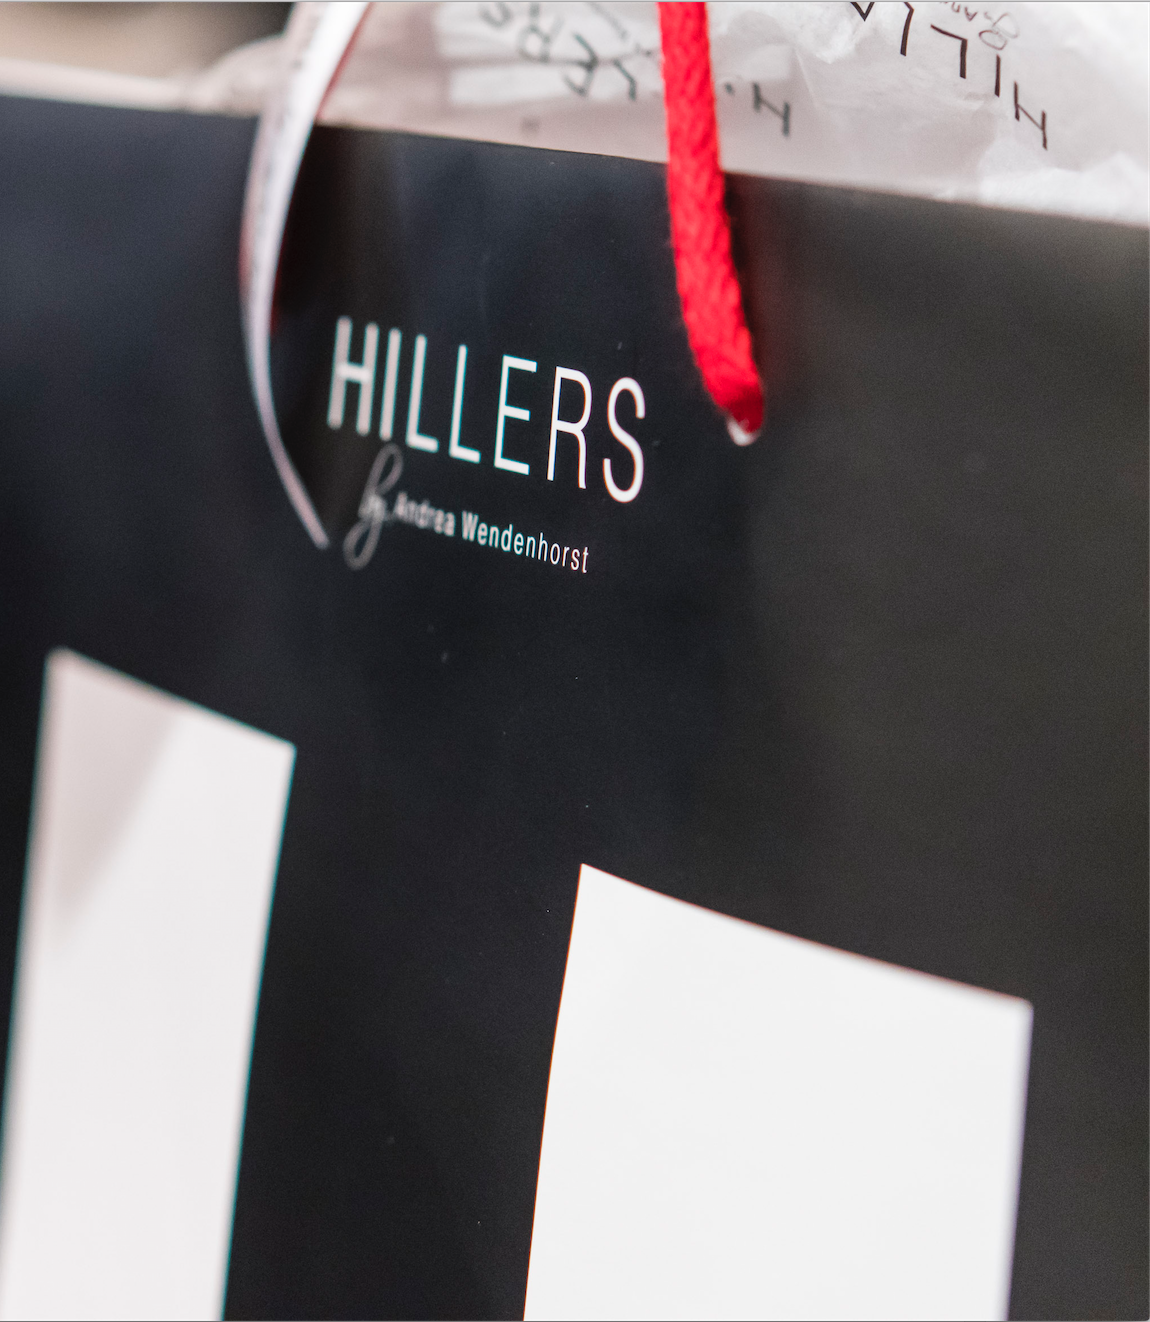 20% Christmas Shopping Rabatt* bei HILLERS